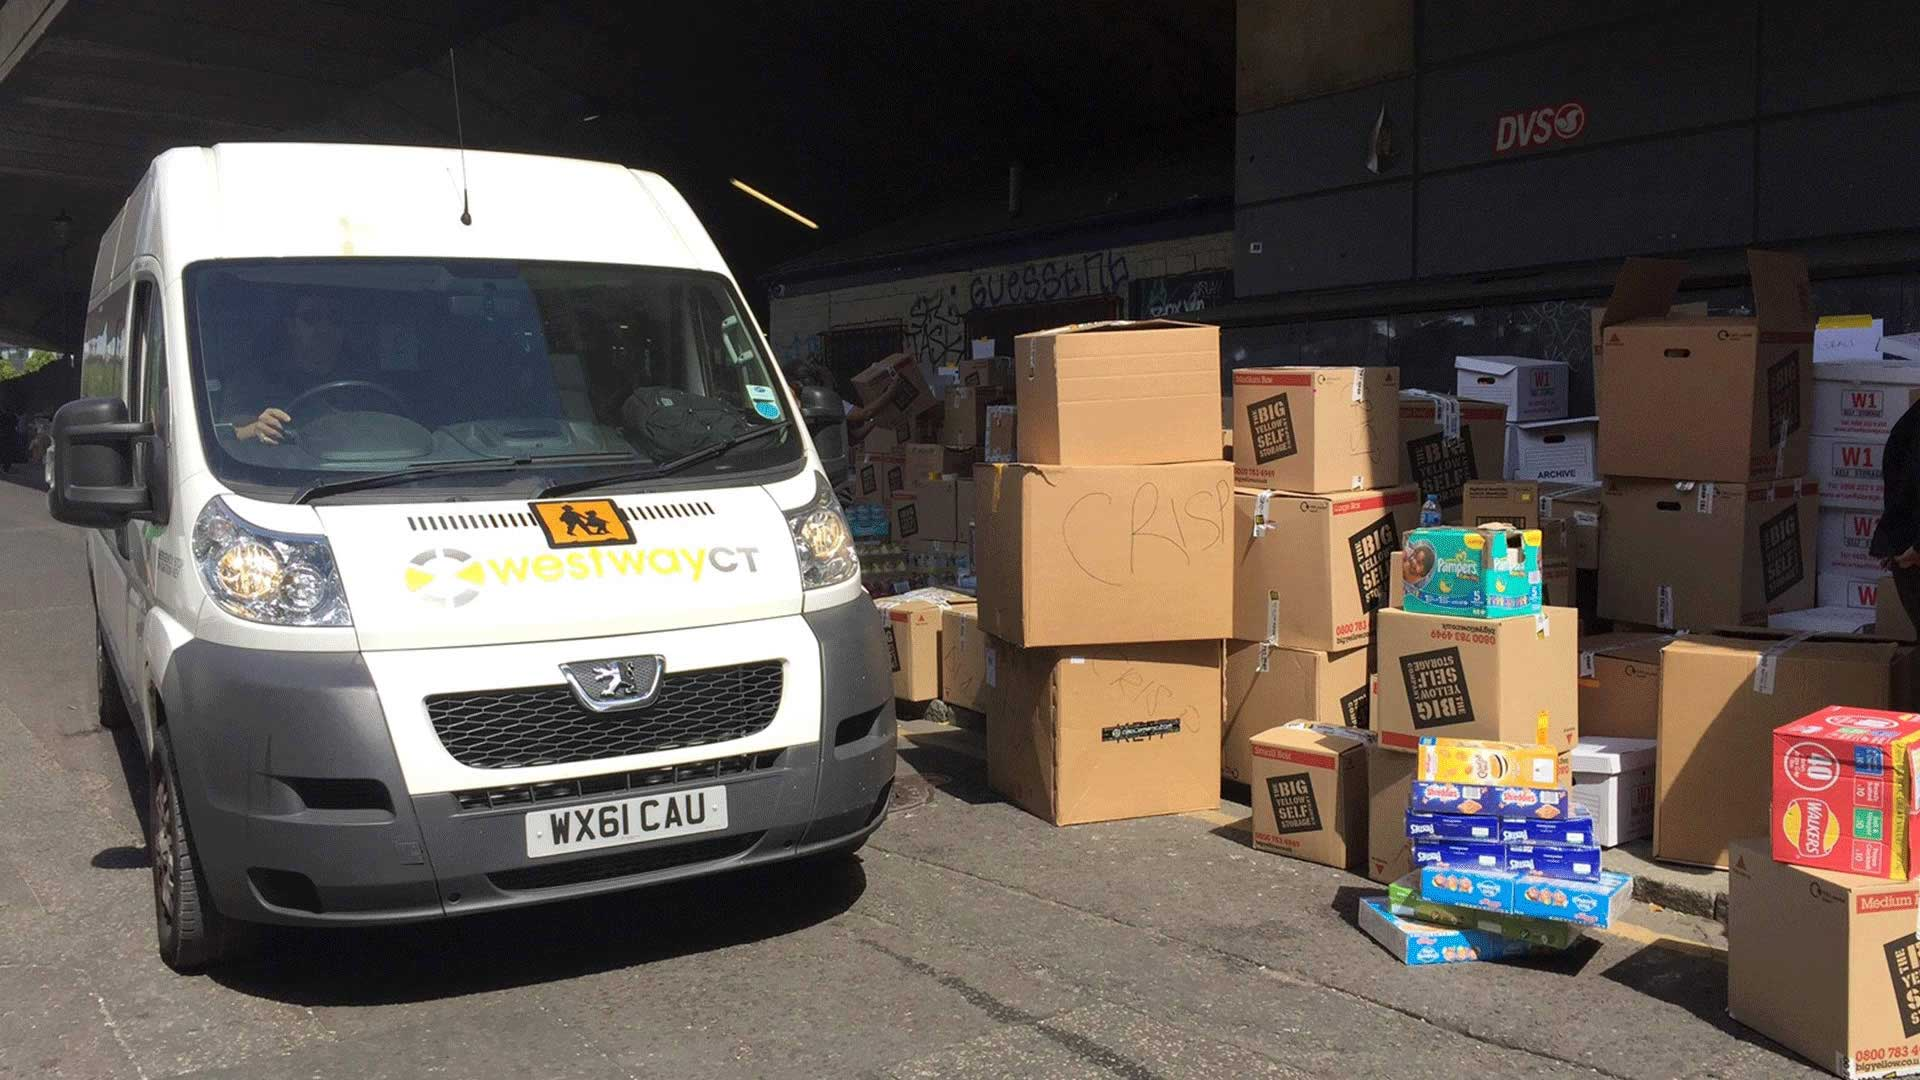 Westway CT van collecting donations for Grenfell victims